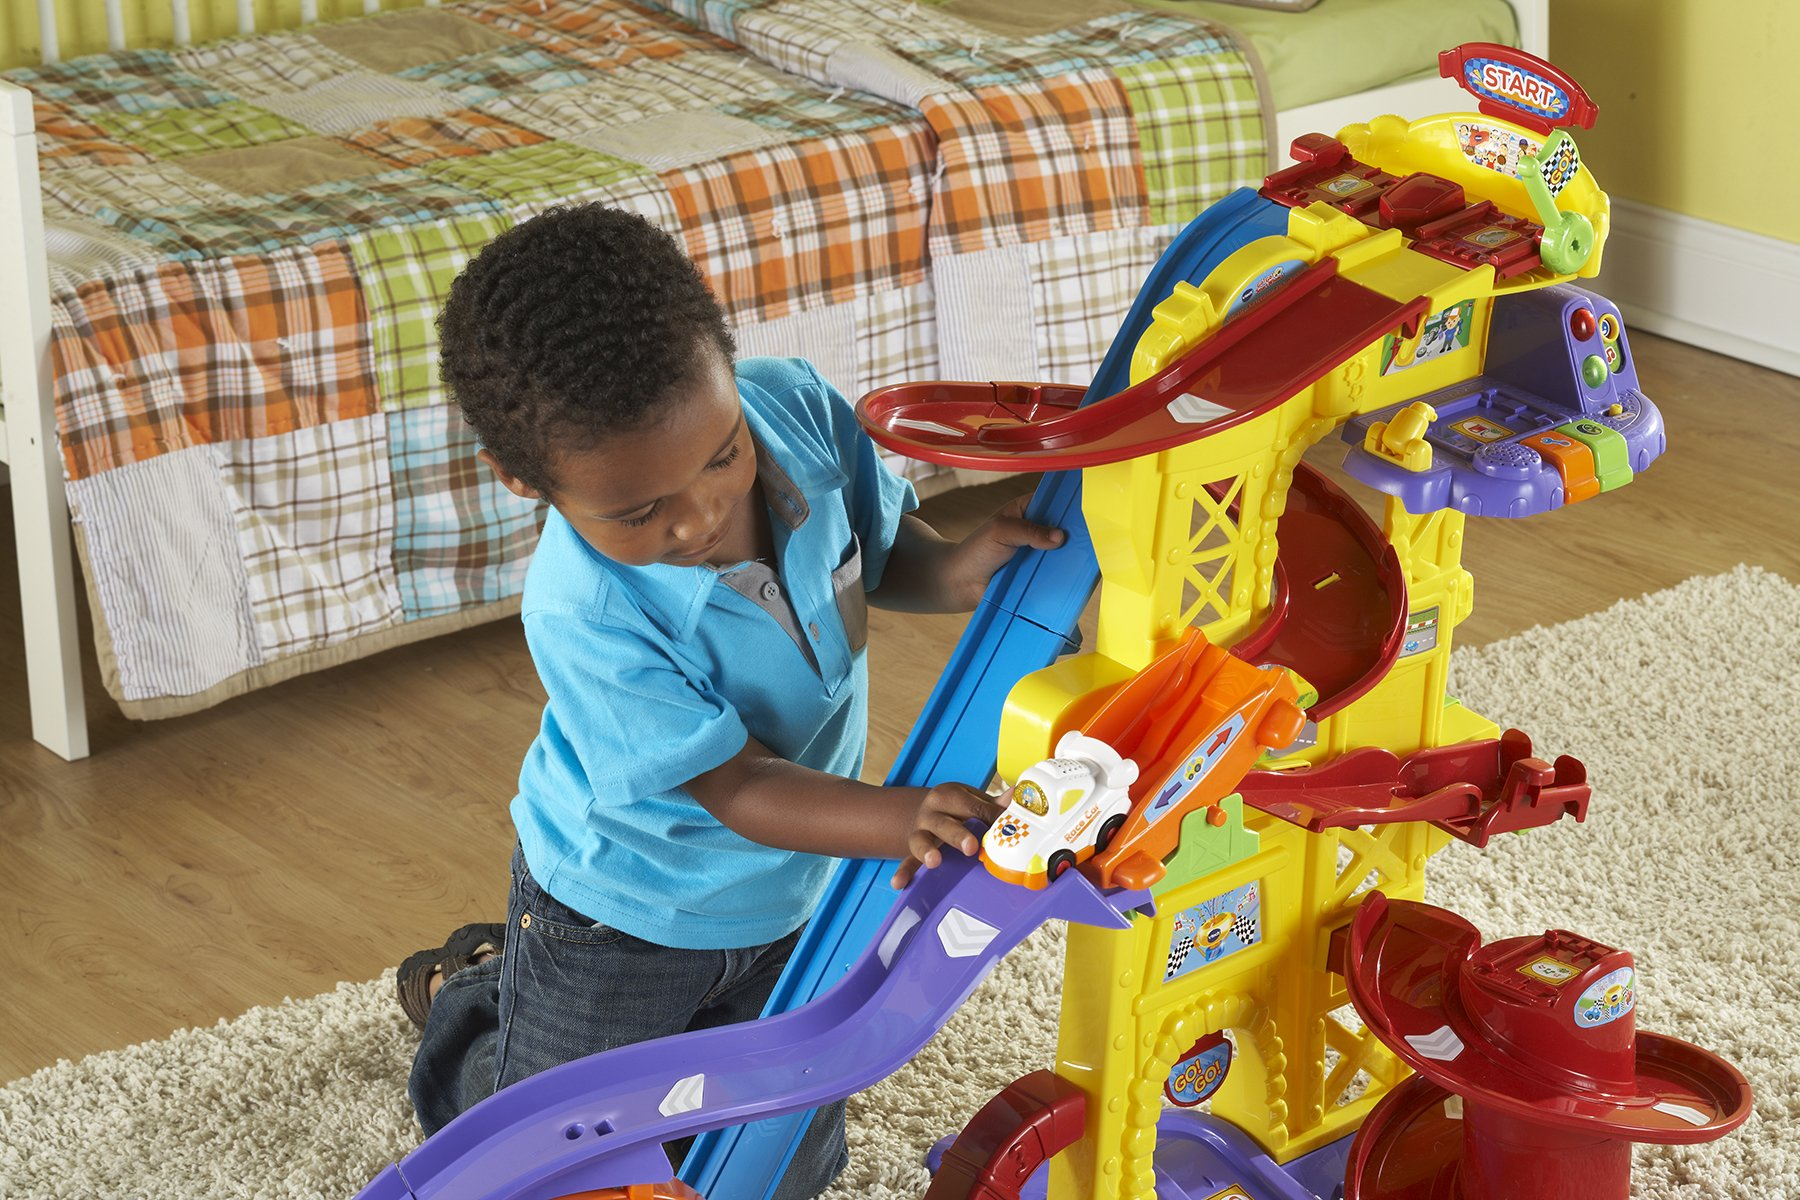 VTech Go! Go! Smart Wheels Ultimate Amazement Park Playset (Frustration Free Packaging) by VTech (Image #5)